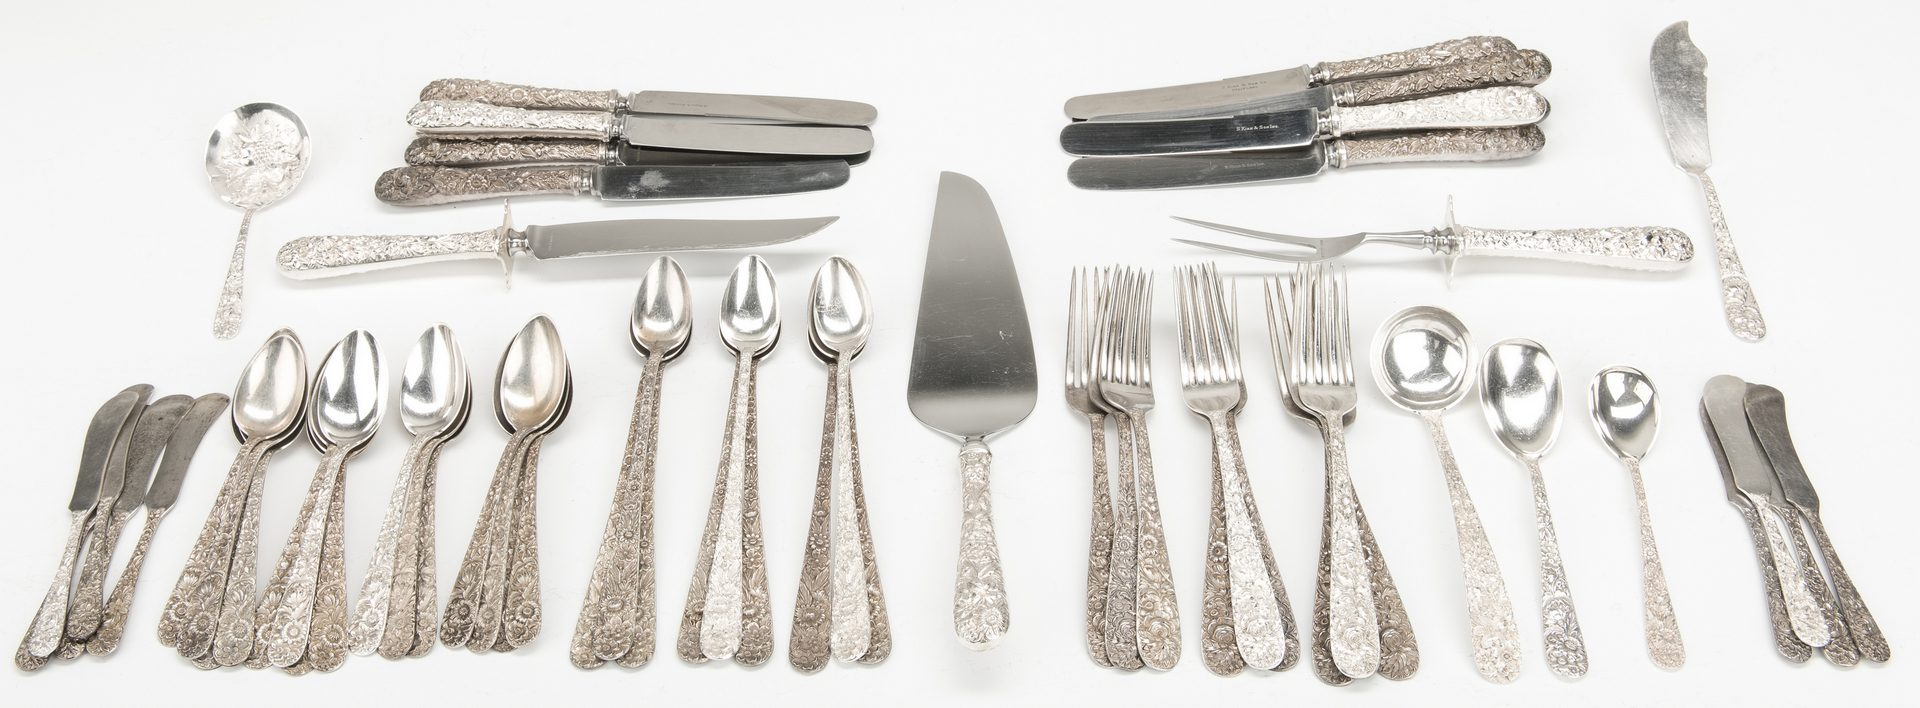 Lot 416: Kirk Repousse Sterling Flatware, 62 pcs